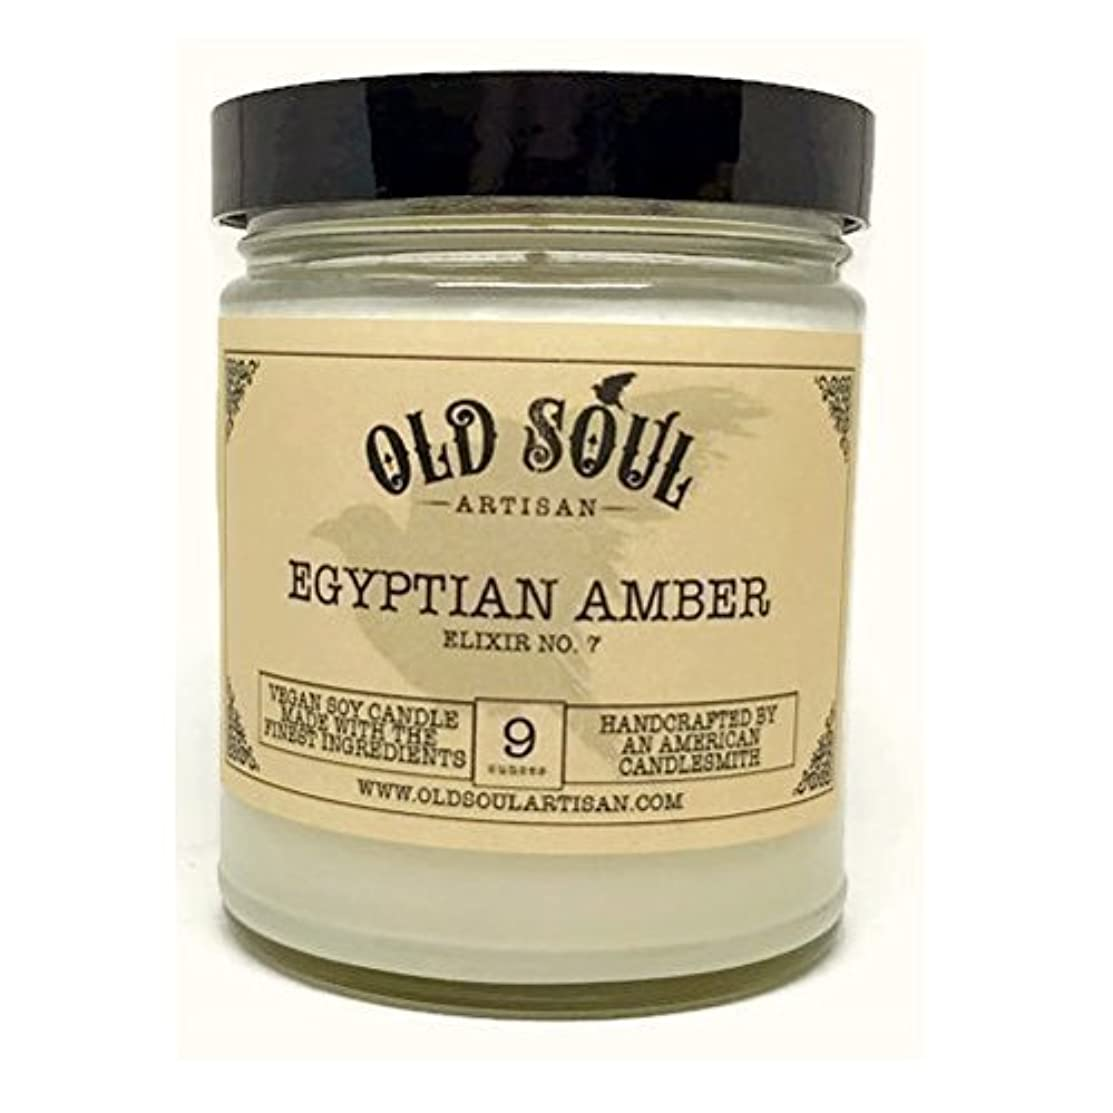 所有者極小暗記するEgyptian Amber Scented Vegan Jar Soy Candle - 9 oz [並行輸入品]